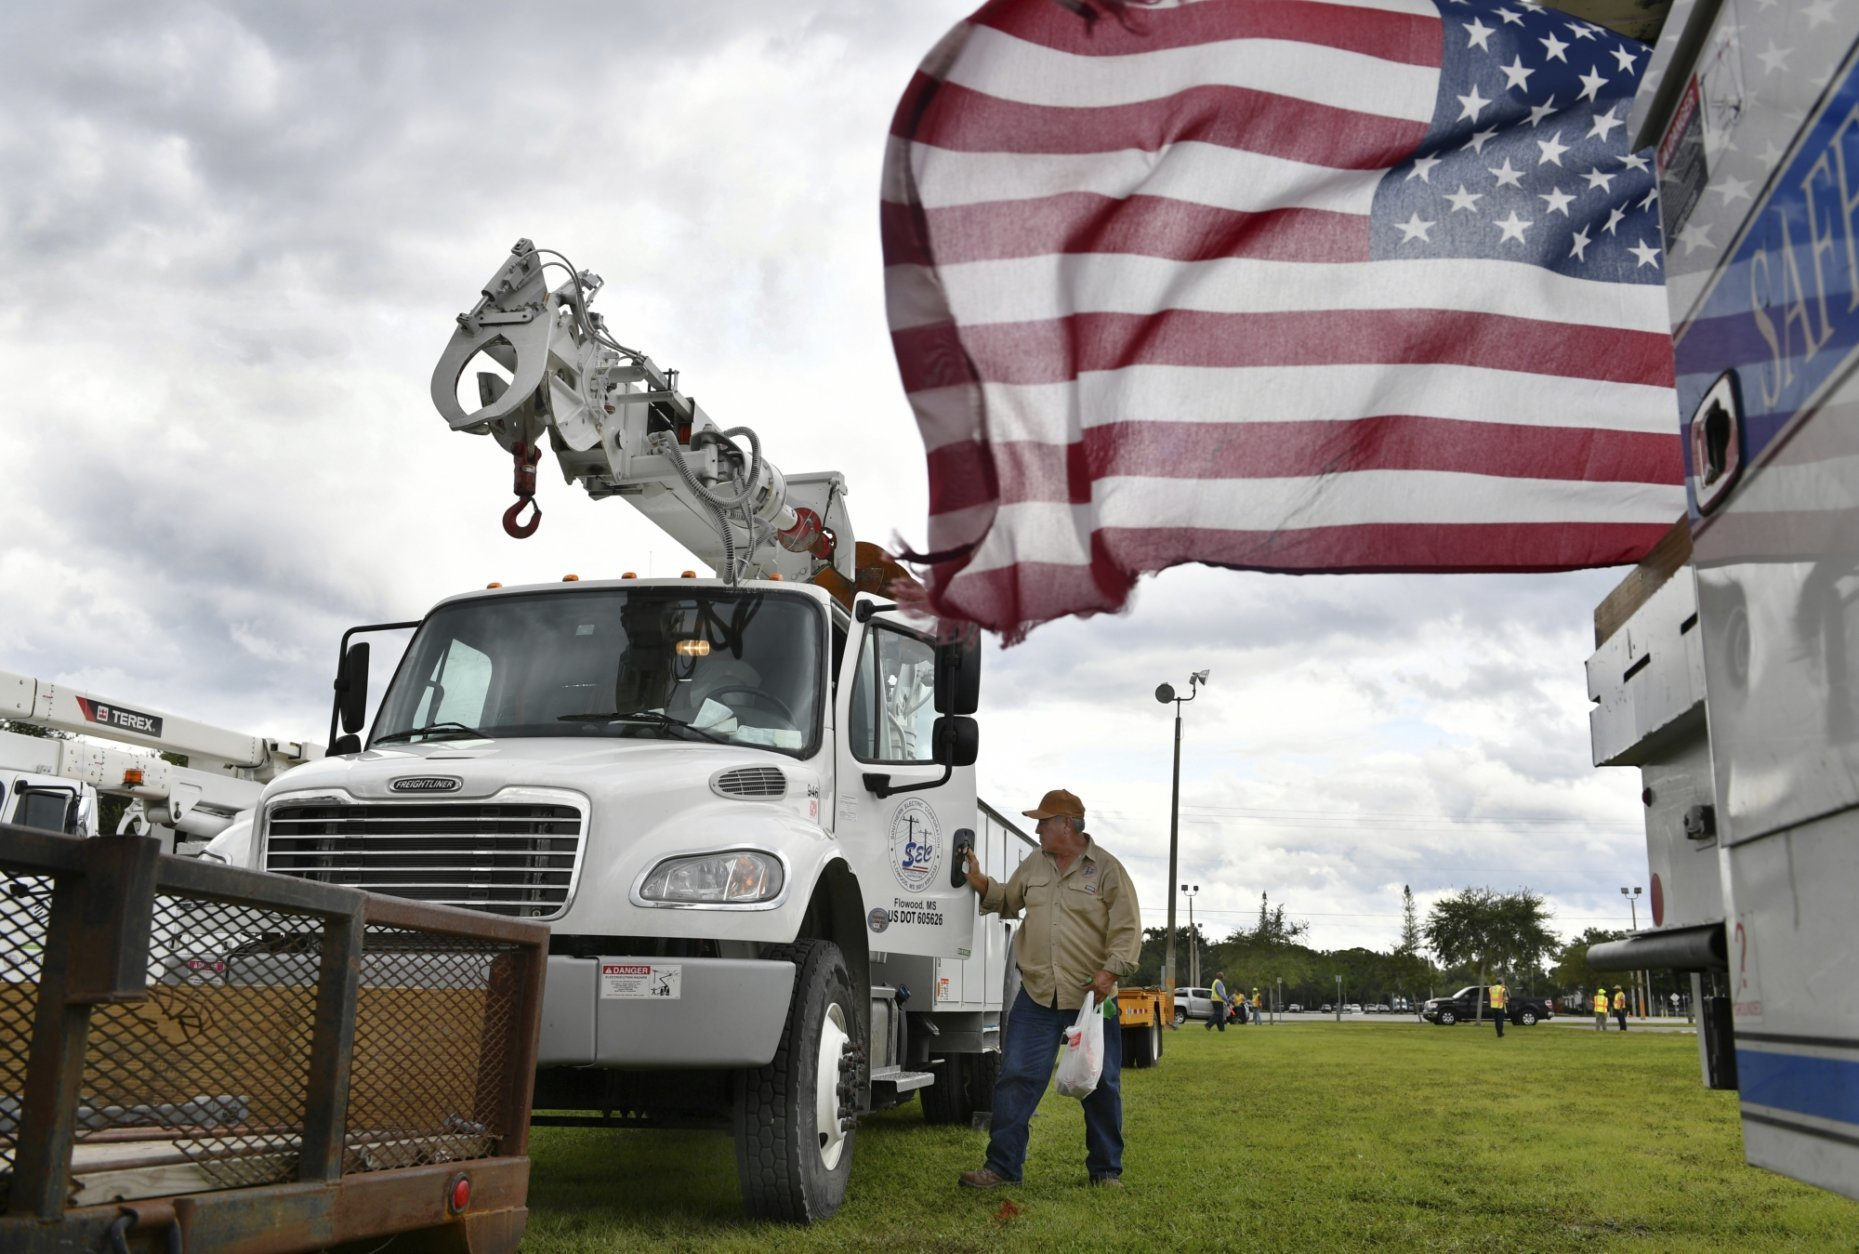 An employee of Southern Electric Corporation from Flowood, Miss., climbs out of the cab of his truck after arriving at the Sarasota Fairgrounds Tuesday, Oct. 9, 2018. Florida Power & Light is staging their power restoration contractors in Sarasota, Fla., in advance of Hurricane Michael's expected landfall in the Florida panhandle later this week. (Mike Lang/Sarasota Herald-Tribune via AP)